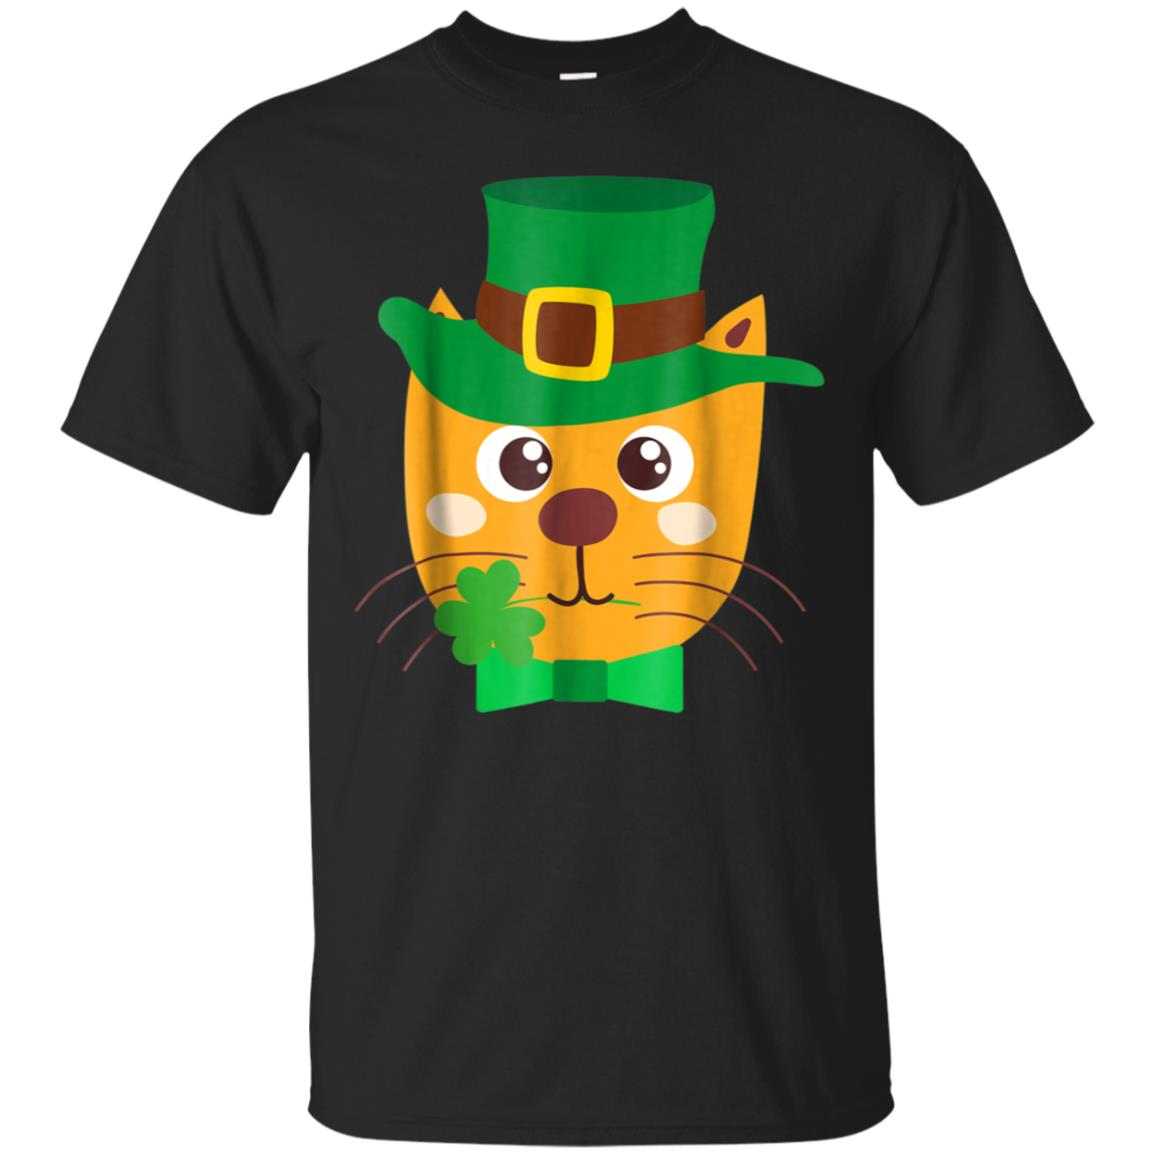 Cute St. Patrick's Day Cat T-Shirt - Gift For Boys And Girls 99promocode